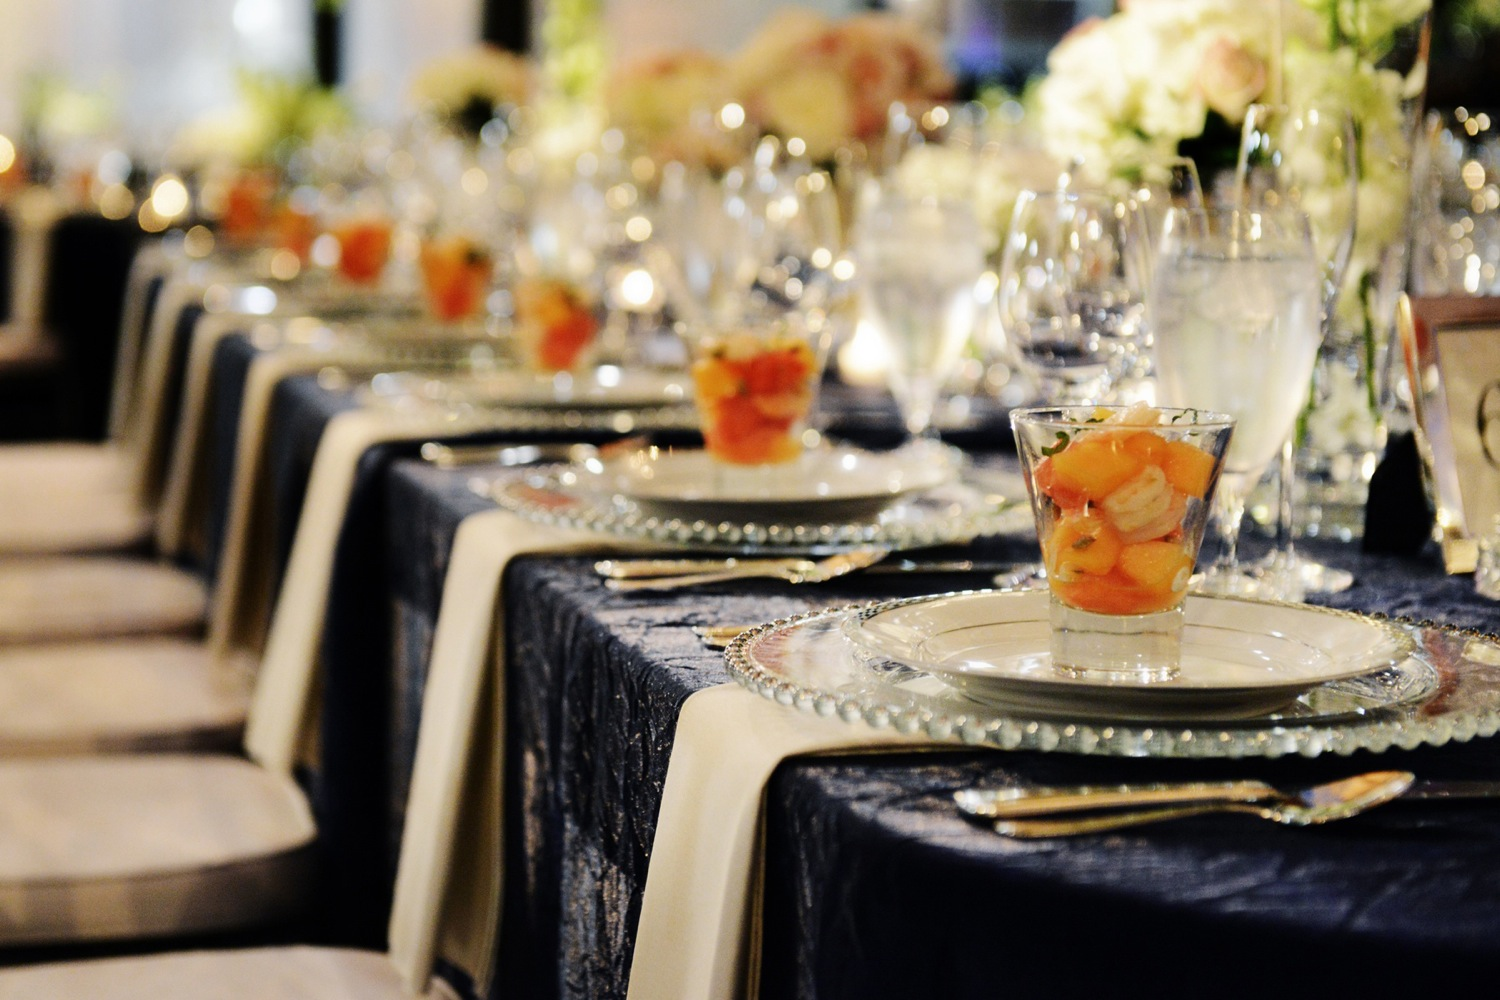 chair rentals newark nj office fabric guide to american party prices services and tips